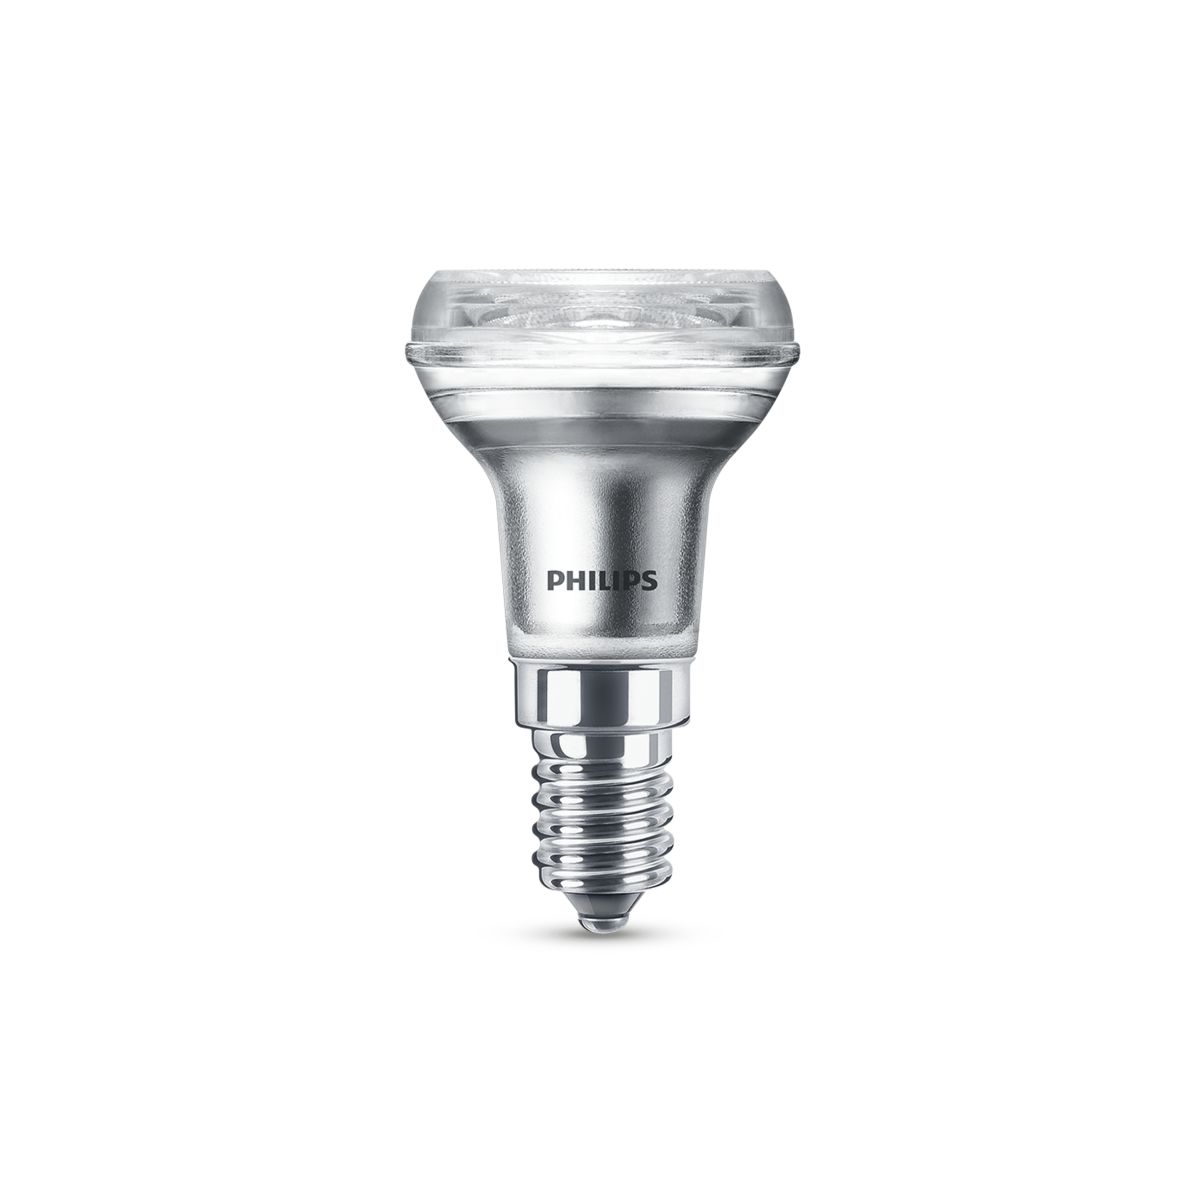 Catalogo Lamparas Philips Reflectores Corepro Ledspot Led Focos Philips Lighting